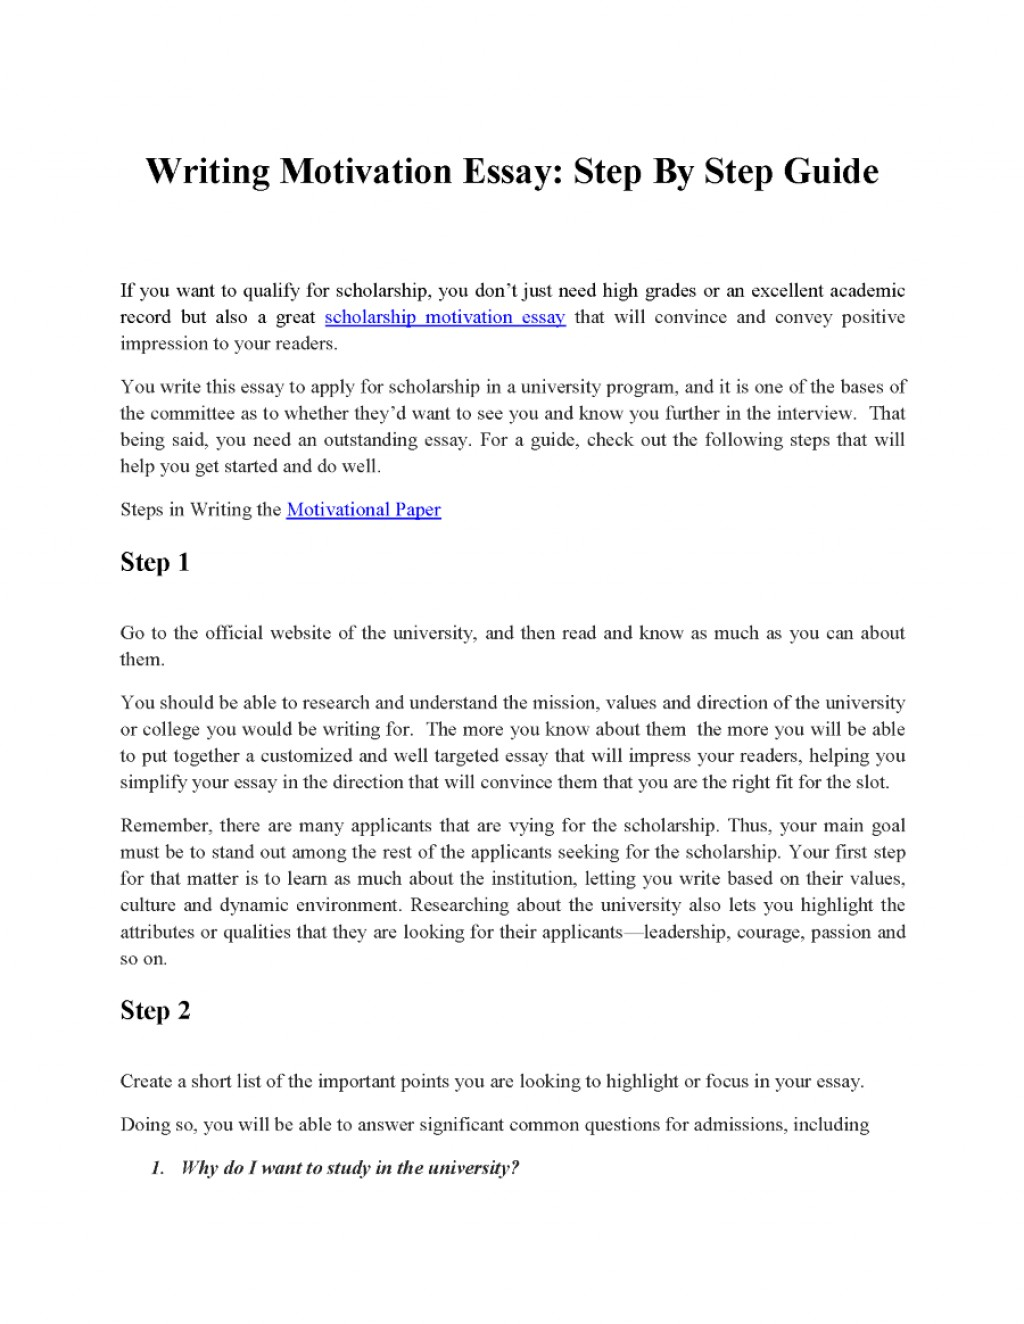 017 2948595 636128784141107500 Slide1 Fs Research Paper Steps To Write Unbelievable 10 A Basic Writing Ppt Large